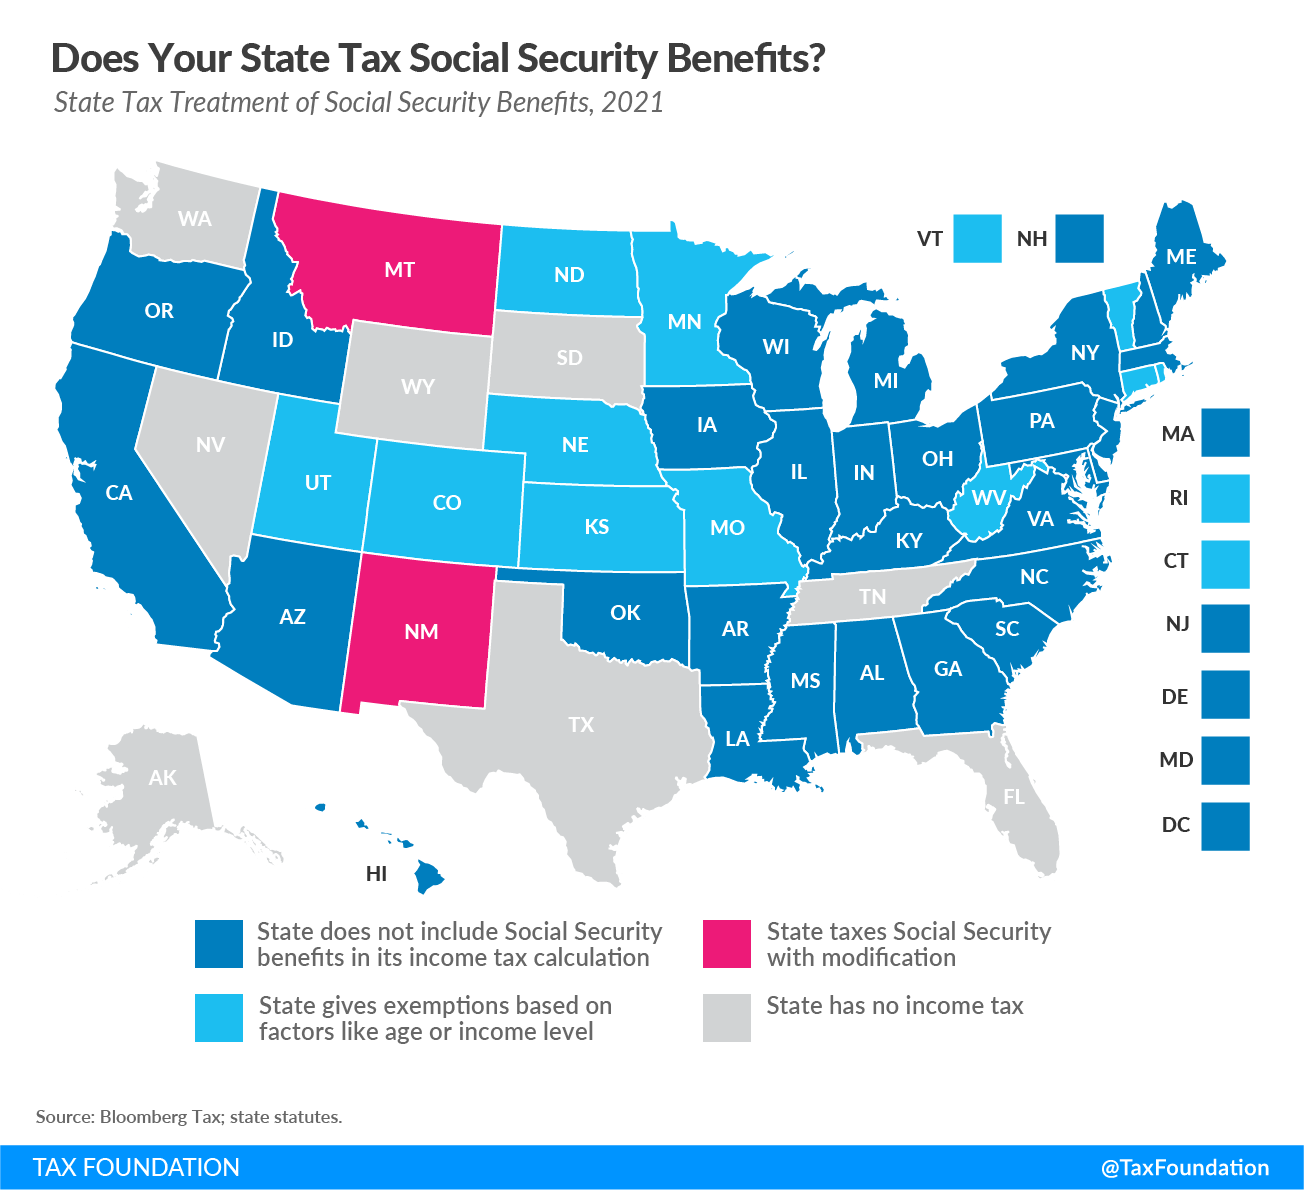 How Does Your State Treat Social Security Income Does Your State Tax Social Security Benefits Compare States that tax Social Security benefits